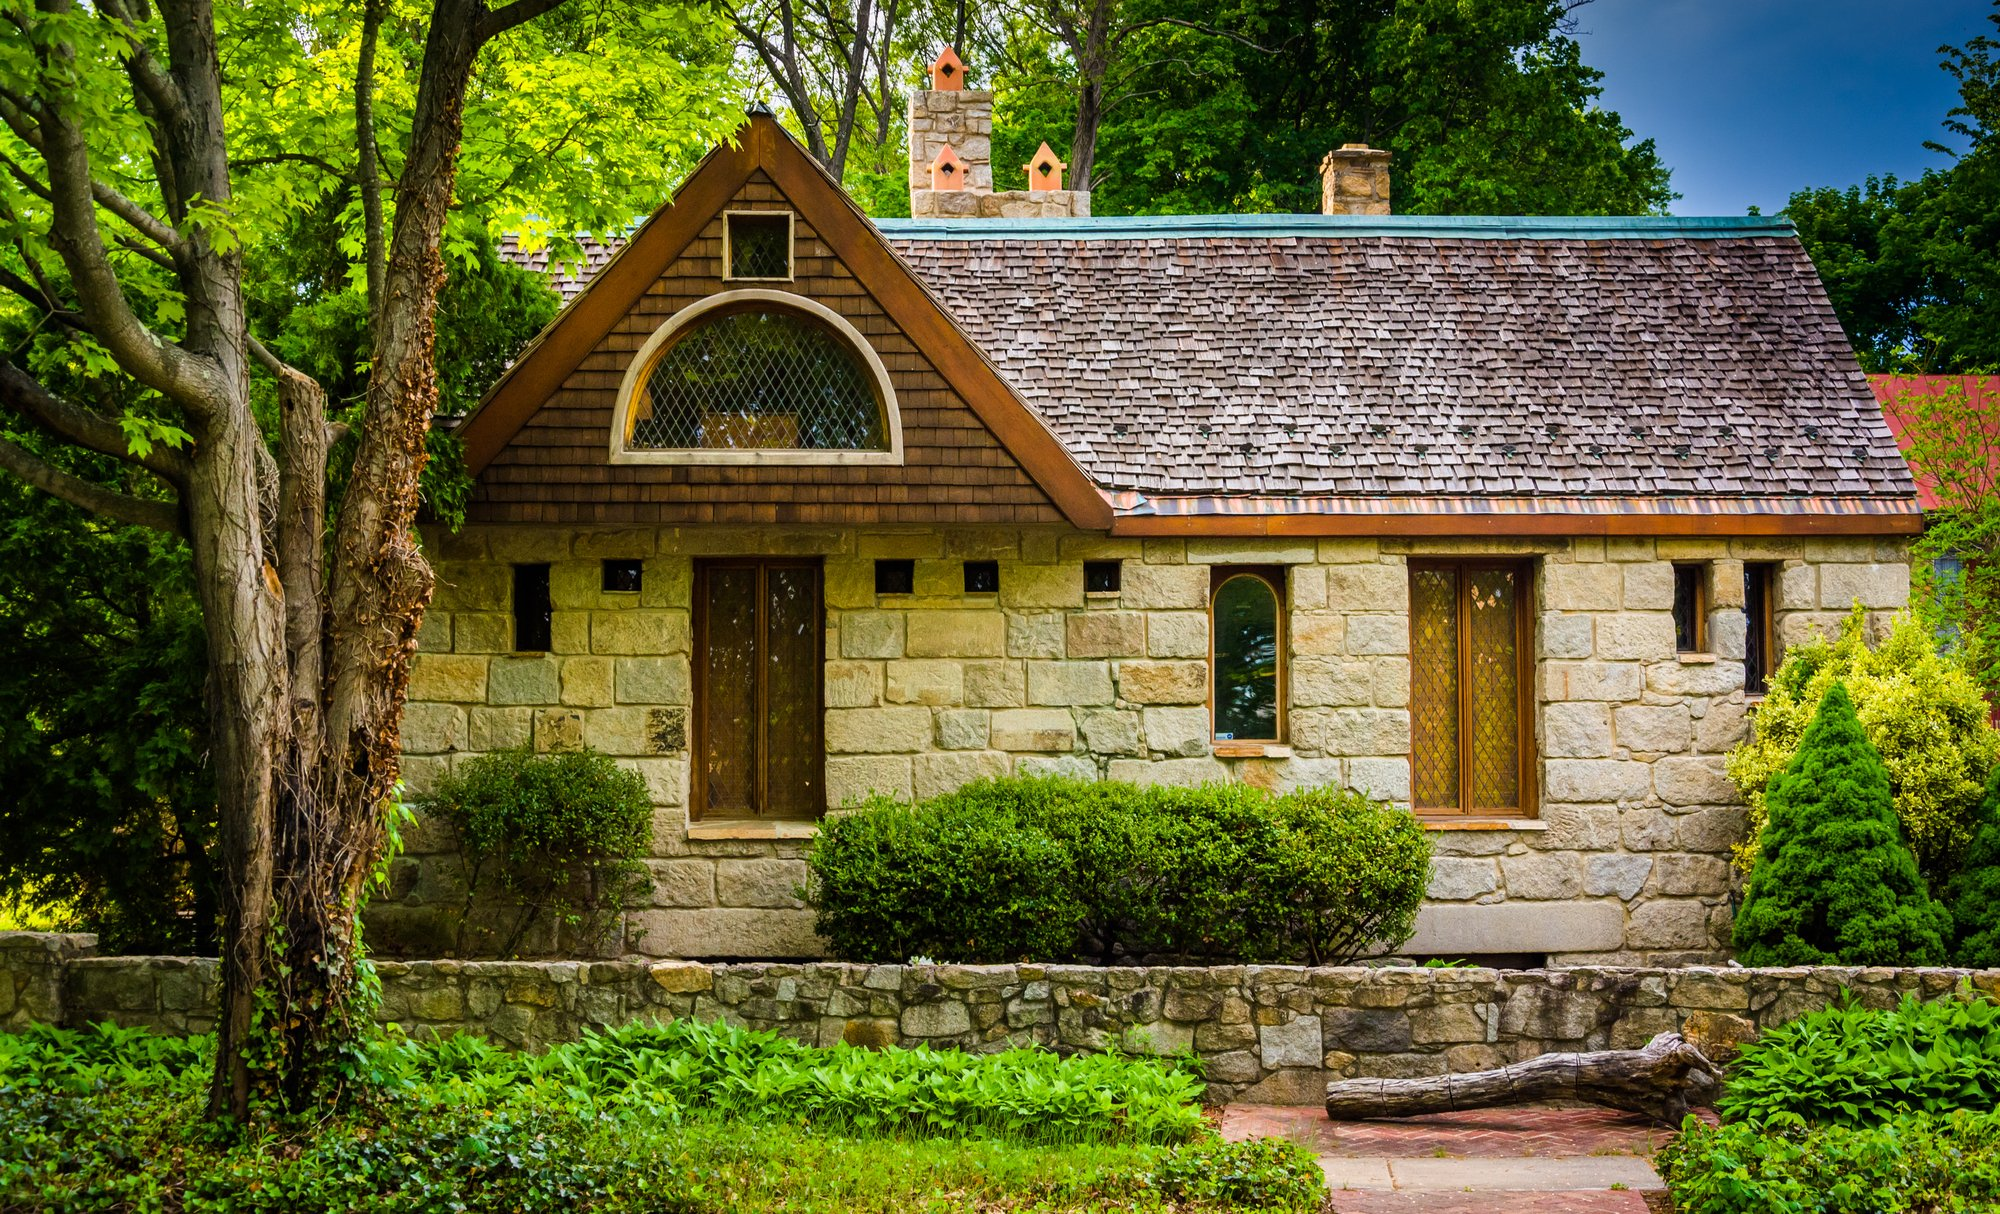 Stone house in Columbia, Maryland